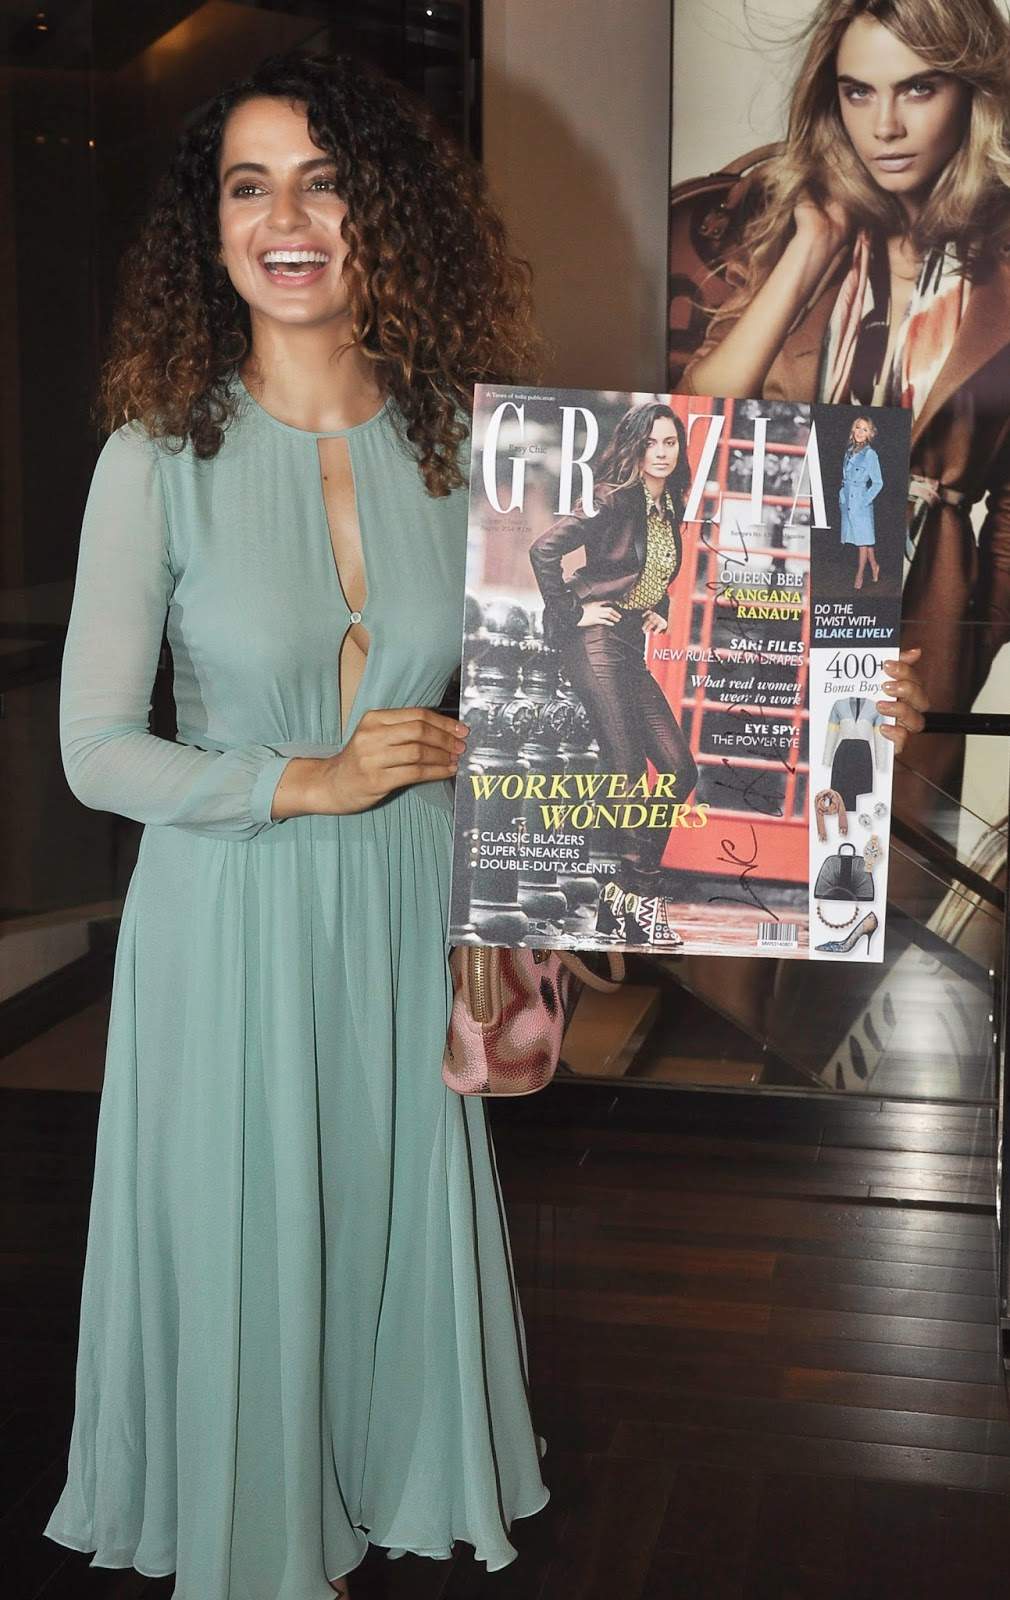 http://2.bp.blogspot.com/-Ny_b5yYbT6I/U924UyxNdJI/AAAAAAAAqX0/viVxhkO6Kpo/s1600/Kangana+Ranaut+Unveils+The+Latest+Issue+Of+Grazia+Magazine+Images+(4).jpg